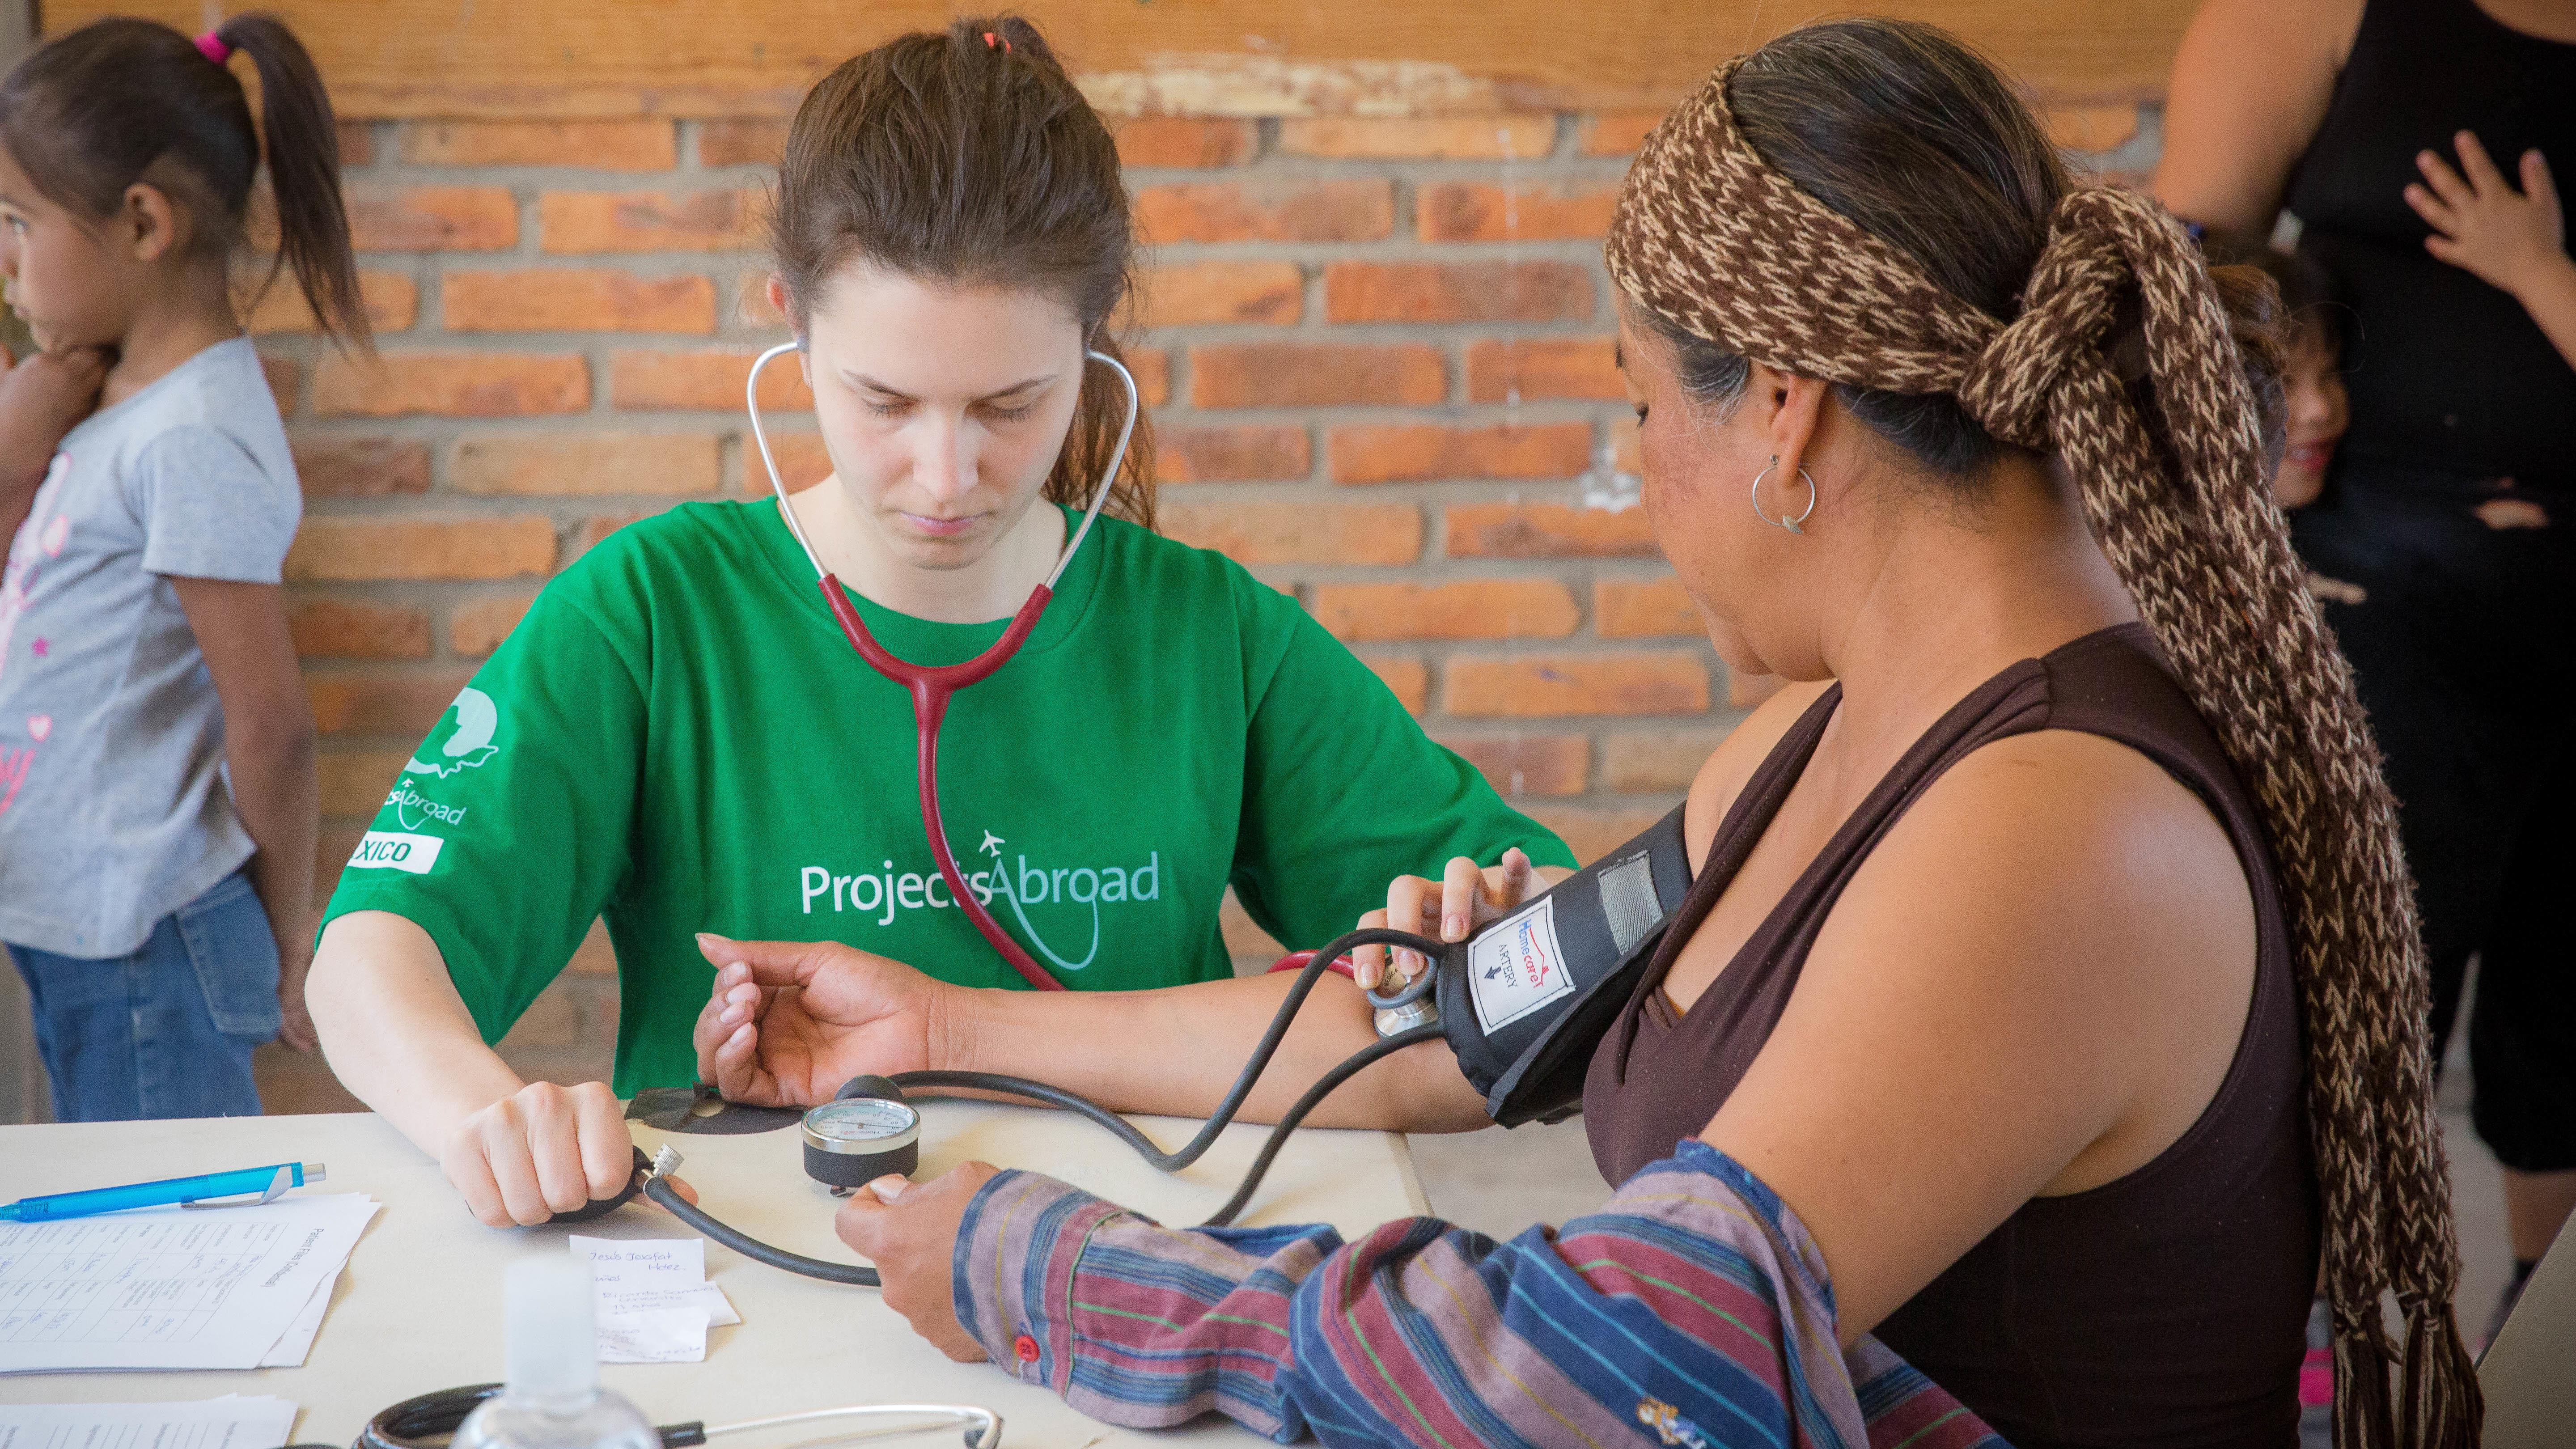 At her Projects Abroad Public Health placement for teenagers in Mexico, an intern checks a woman's vital signs.